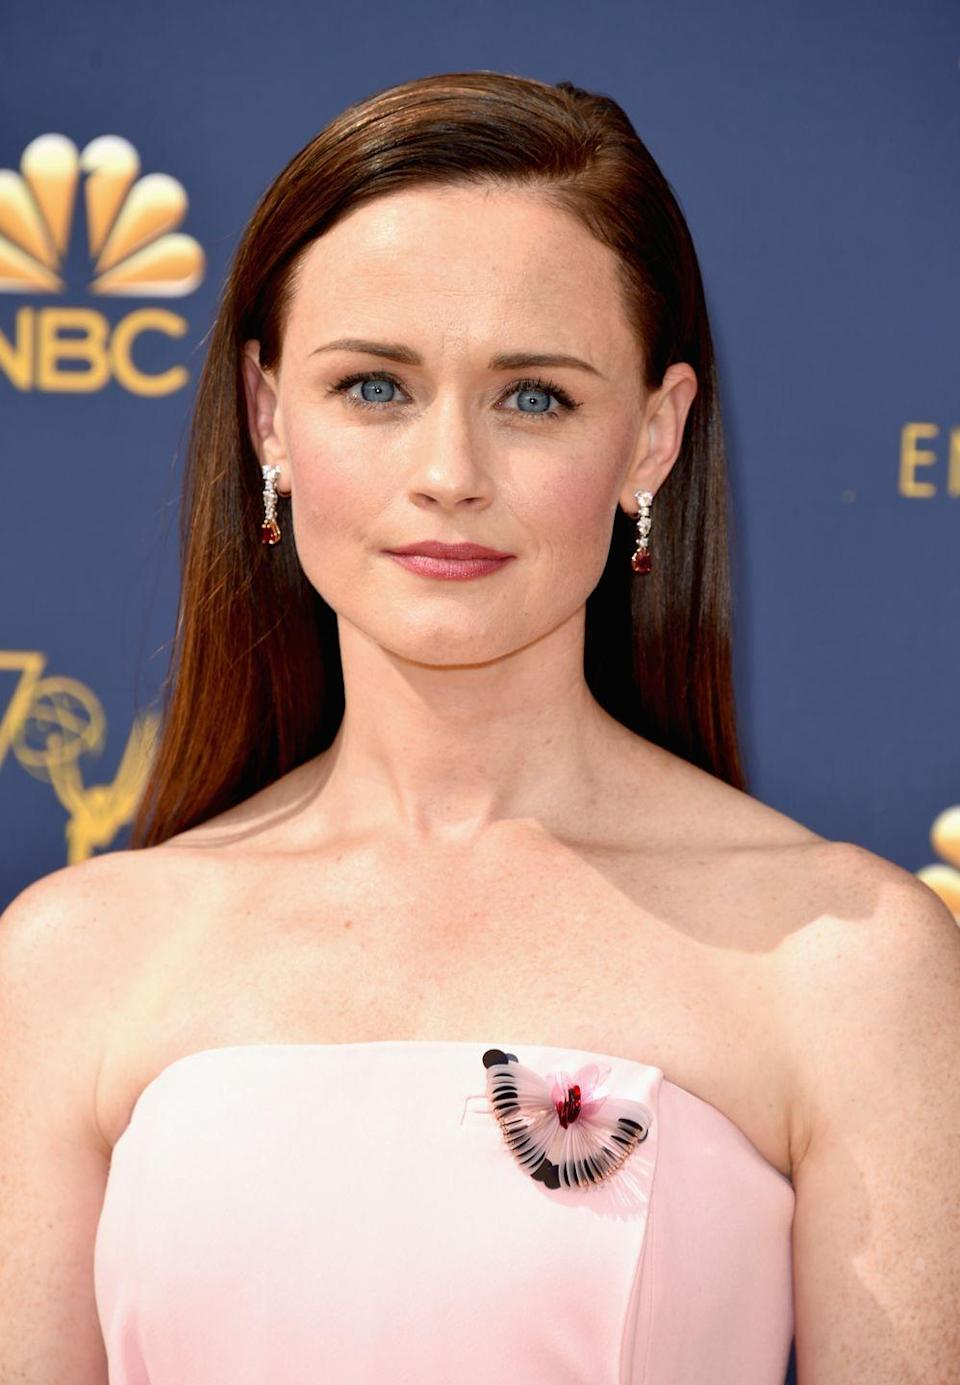 """<p>Since <em>Gilmore Girls</em>, Alexis' career has continued to flourish. The actress had a reoccurring role on <em>Mad Men </em>in 2012<em>, </em>where she met her now-husband Vincent Kartheiser. She also won an Emmy for her role in Hulu's <em>The Handmaid's Tale.</em> <a href=""""https://www.youtube.com/watch?v=LXerH2cxKAY"""" rel=""""nofollow noopener"""" target=""""_blank"""" data-ylk=""""slk:Recently, she announced"""" class=""""link rapid-noclick-resp"""">Recently, she announced</a> plans for <em>The Sisterhood of the Traveling Pants 3. </em></p>"""